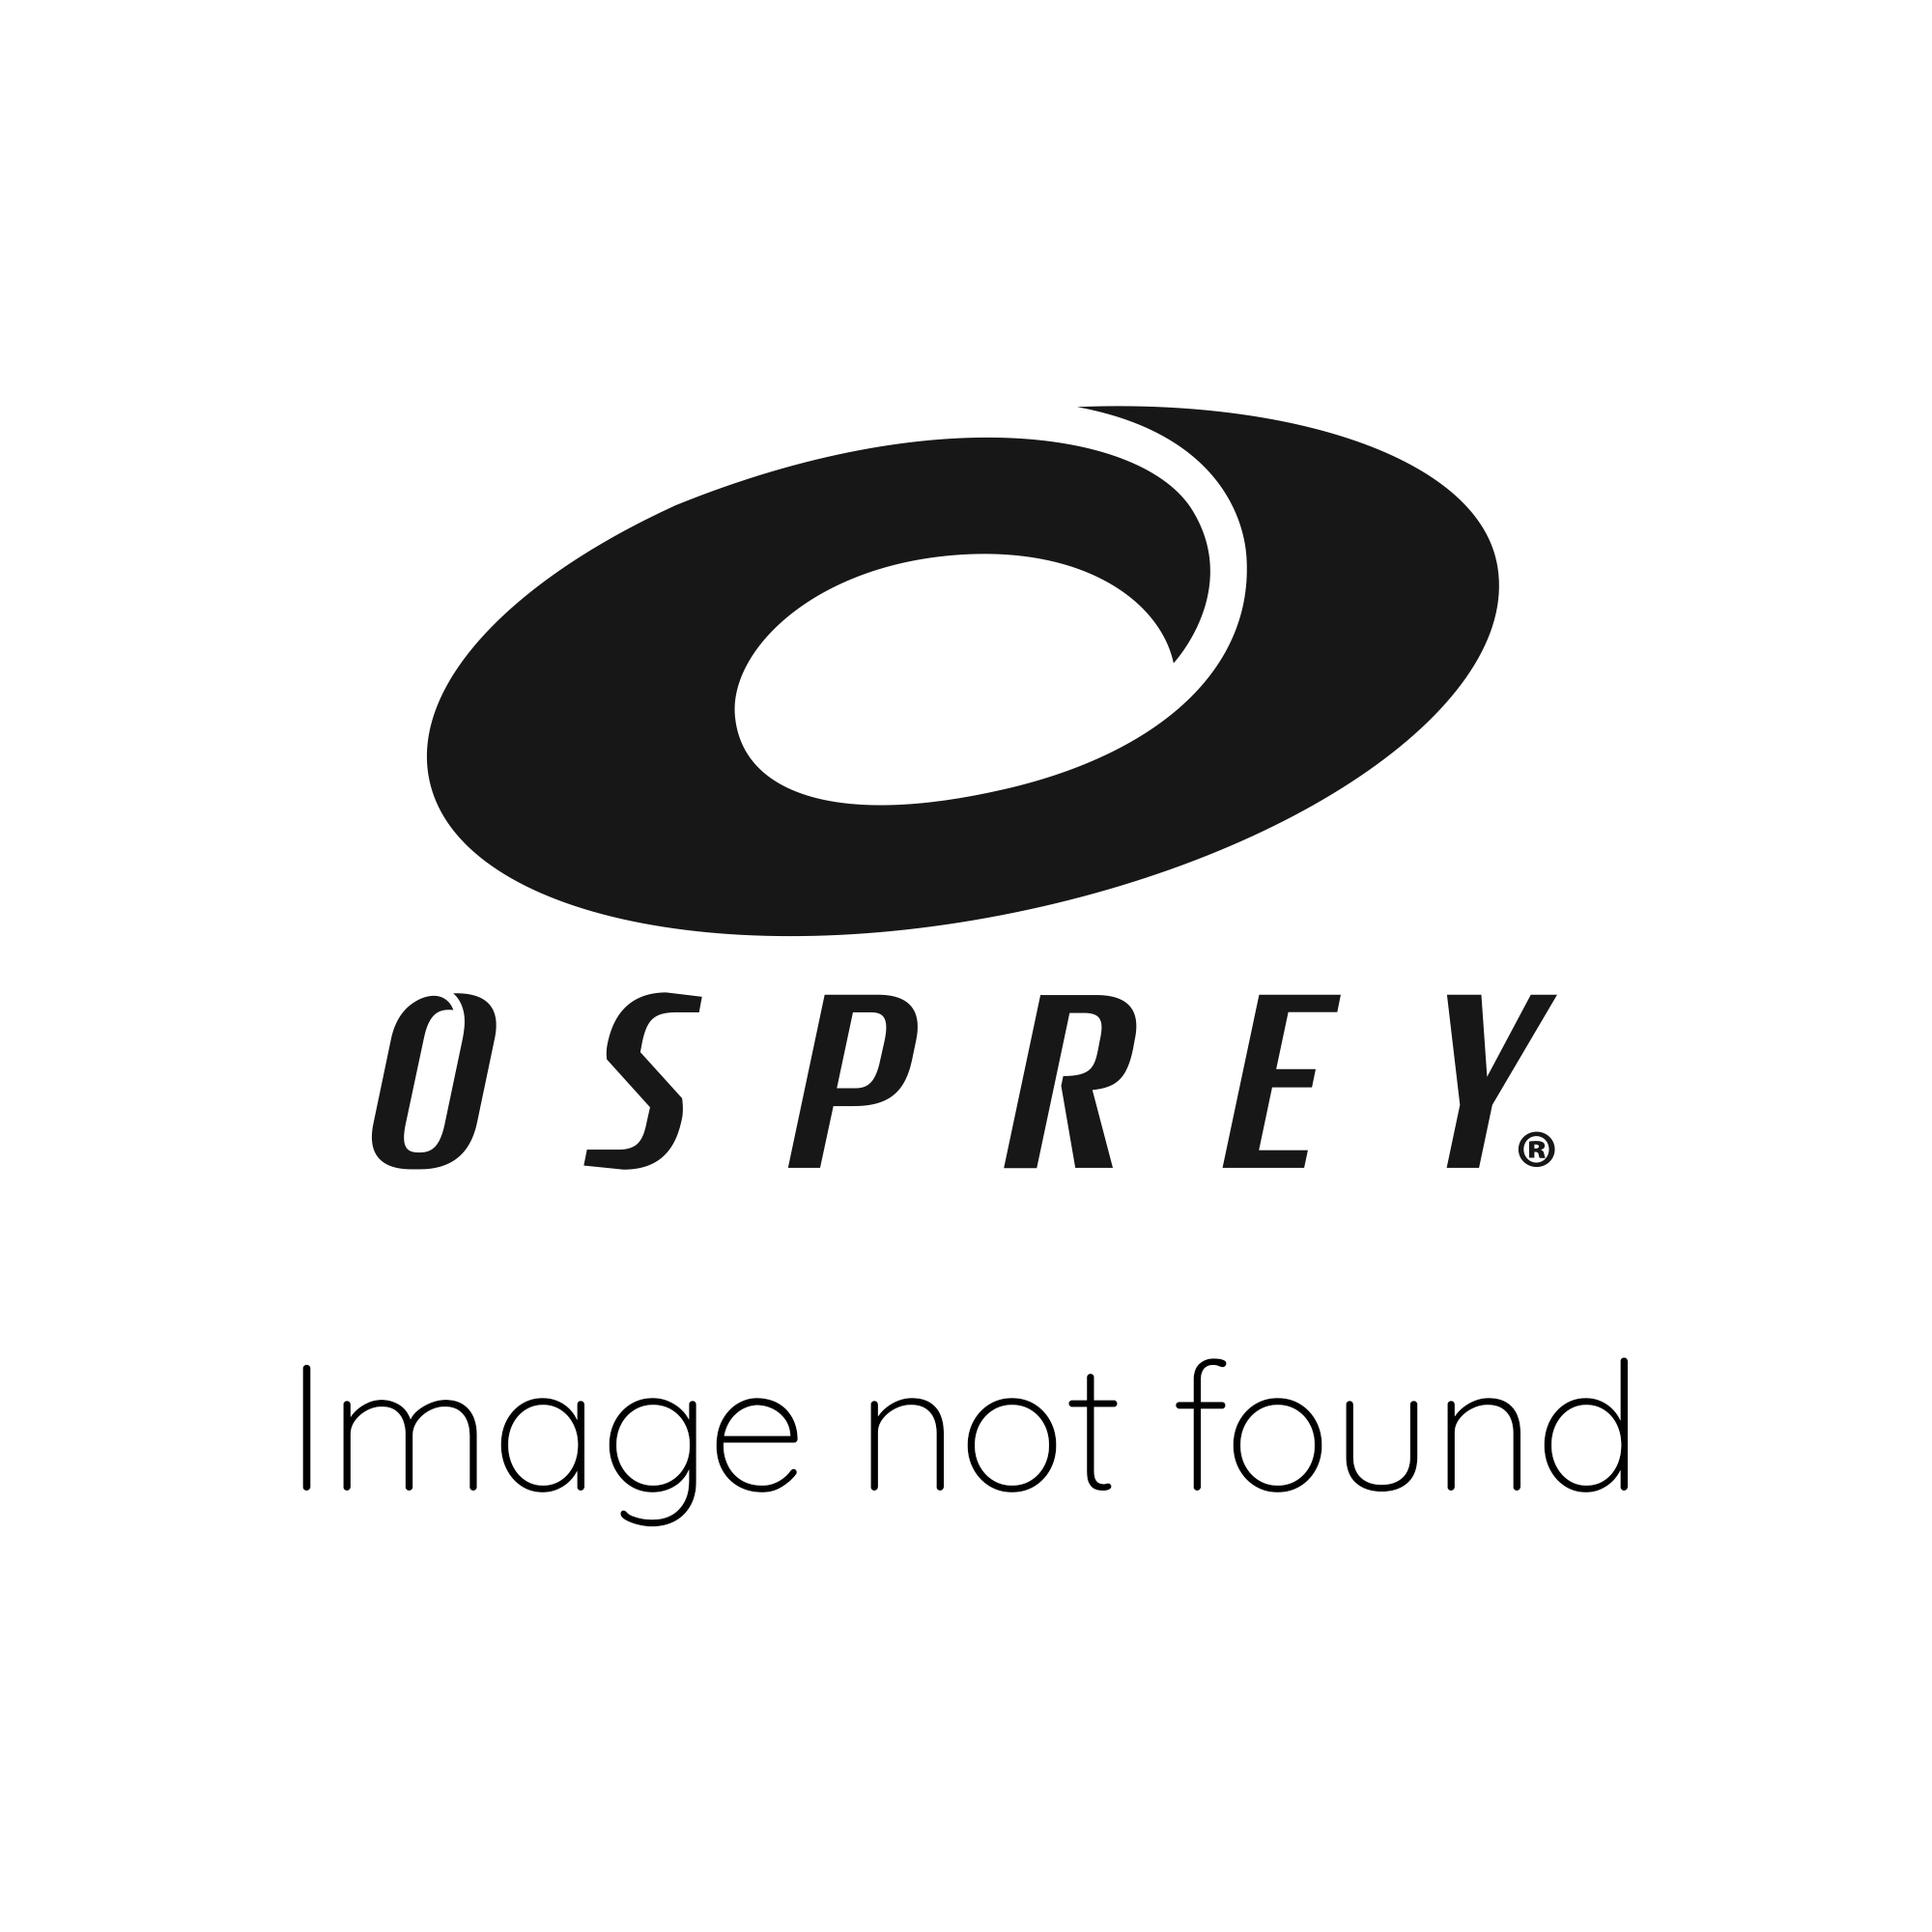 Osprey Mens 5mm Triathlon Full Length Wetsuit Pro - Black